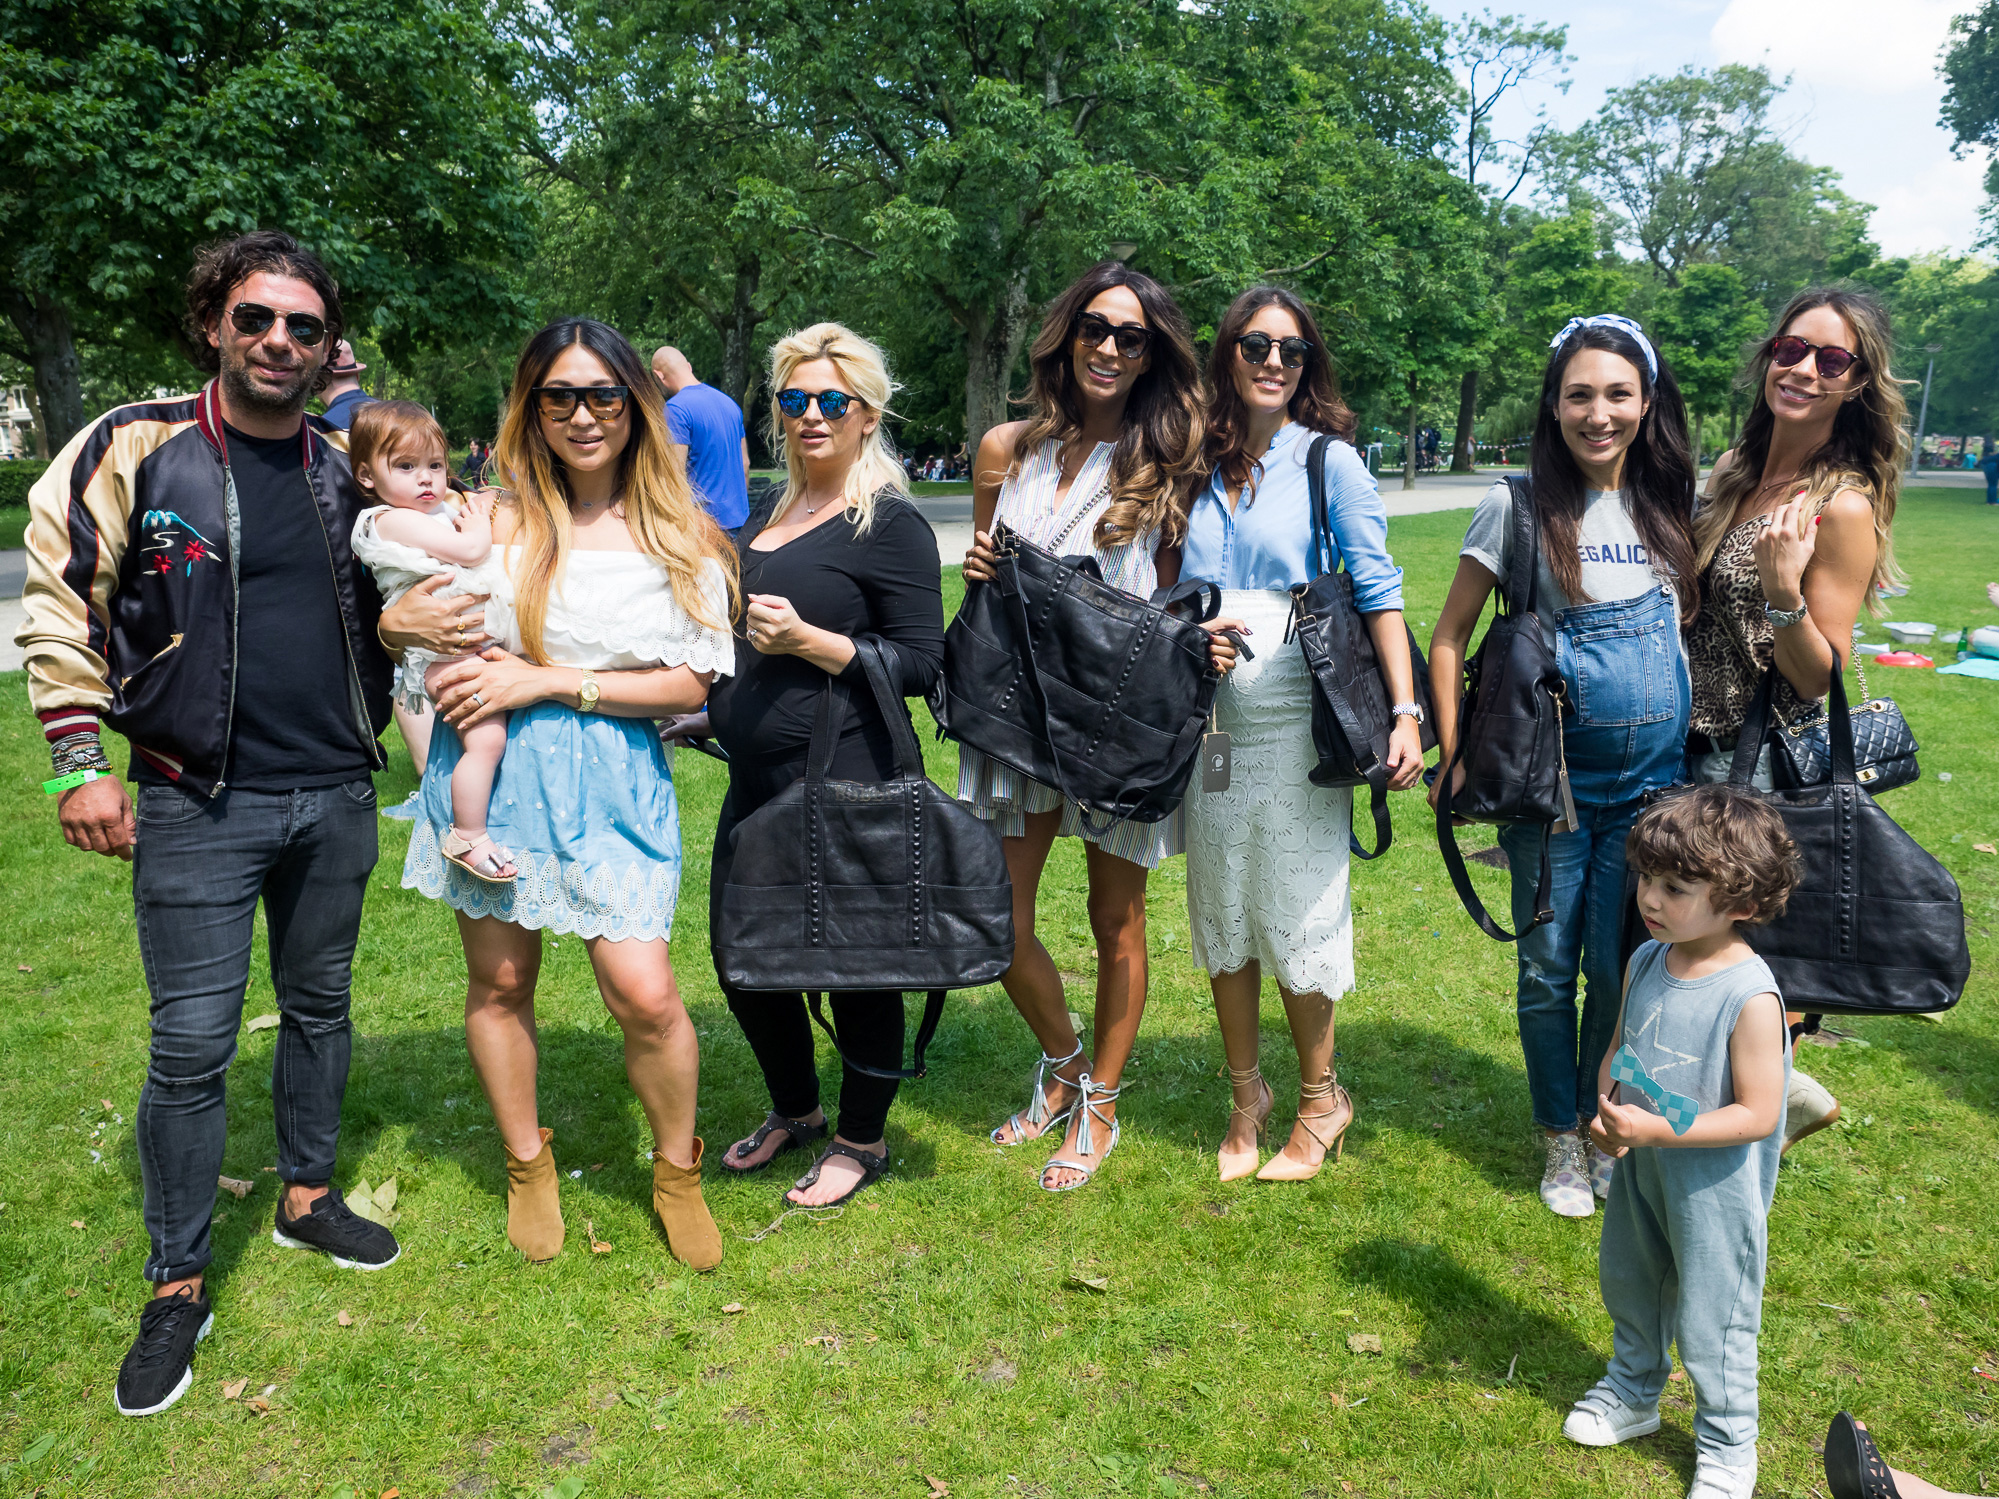 PretaPregnant_Janine_THEMOM_Goosecraft_Loreal_Noppies_Polaroid_Summerparty_BBQ_By_Marinke_Davelaar (12)